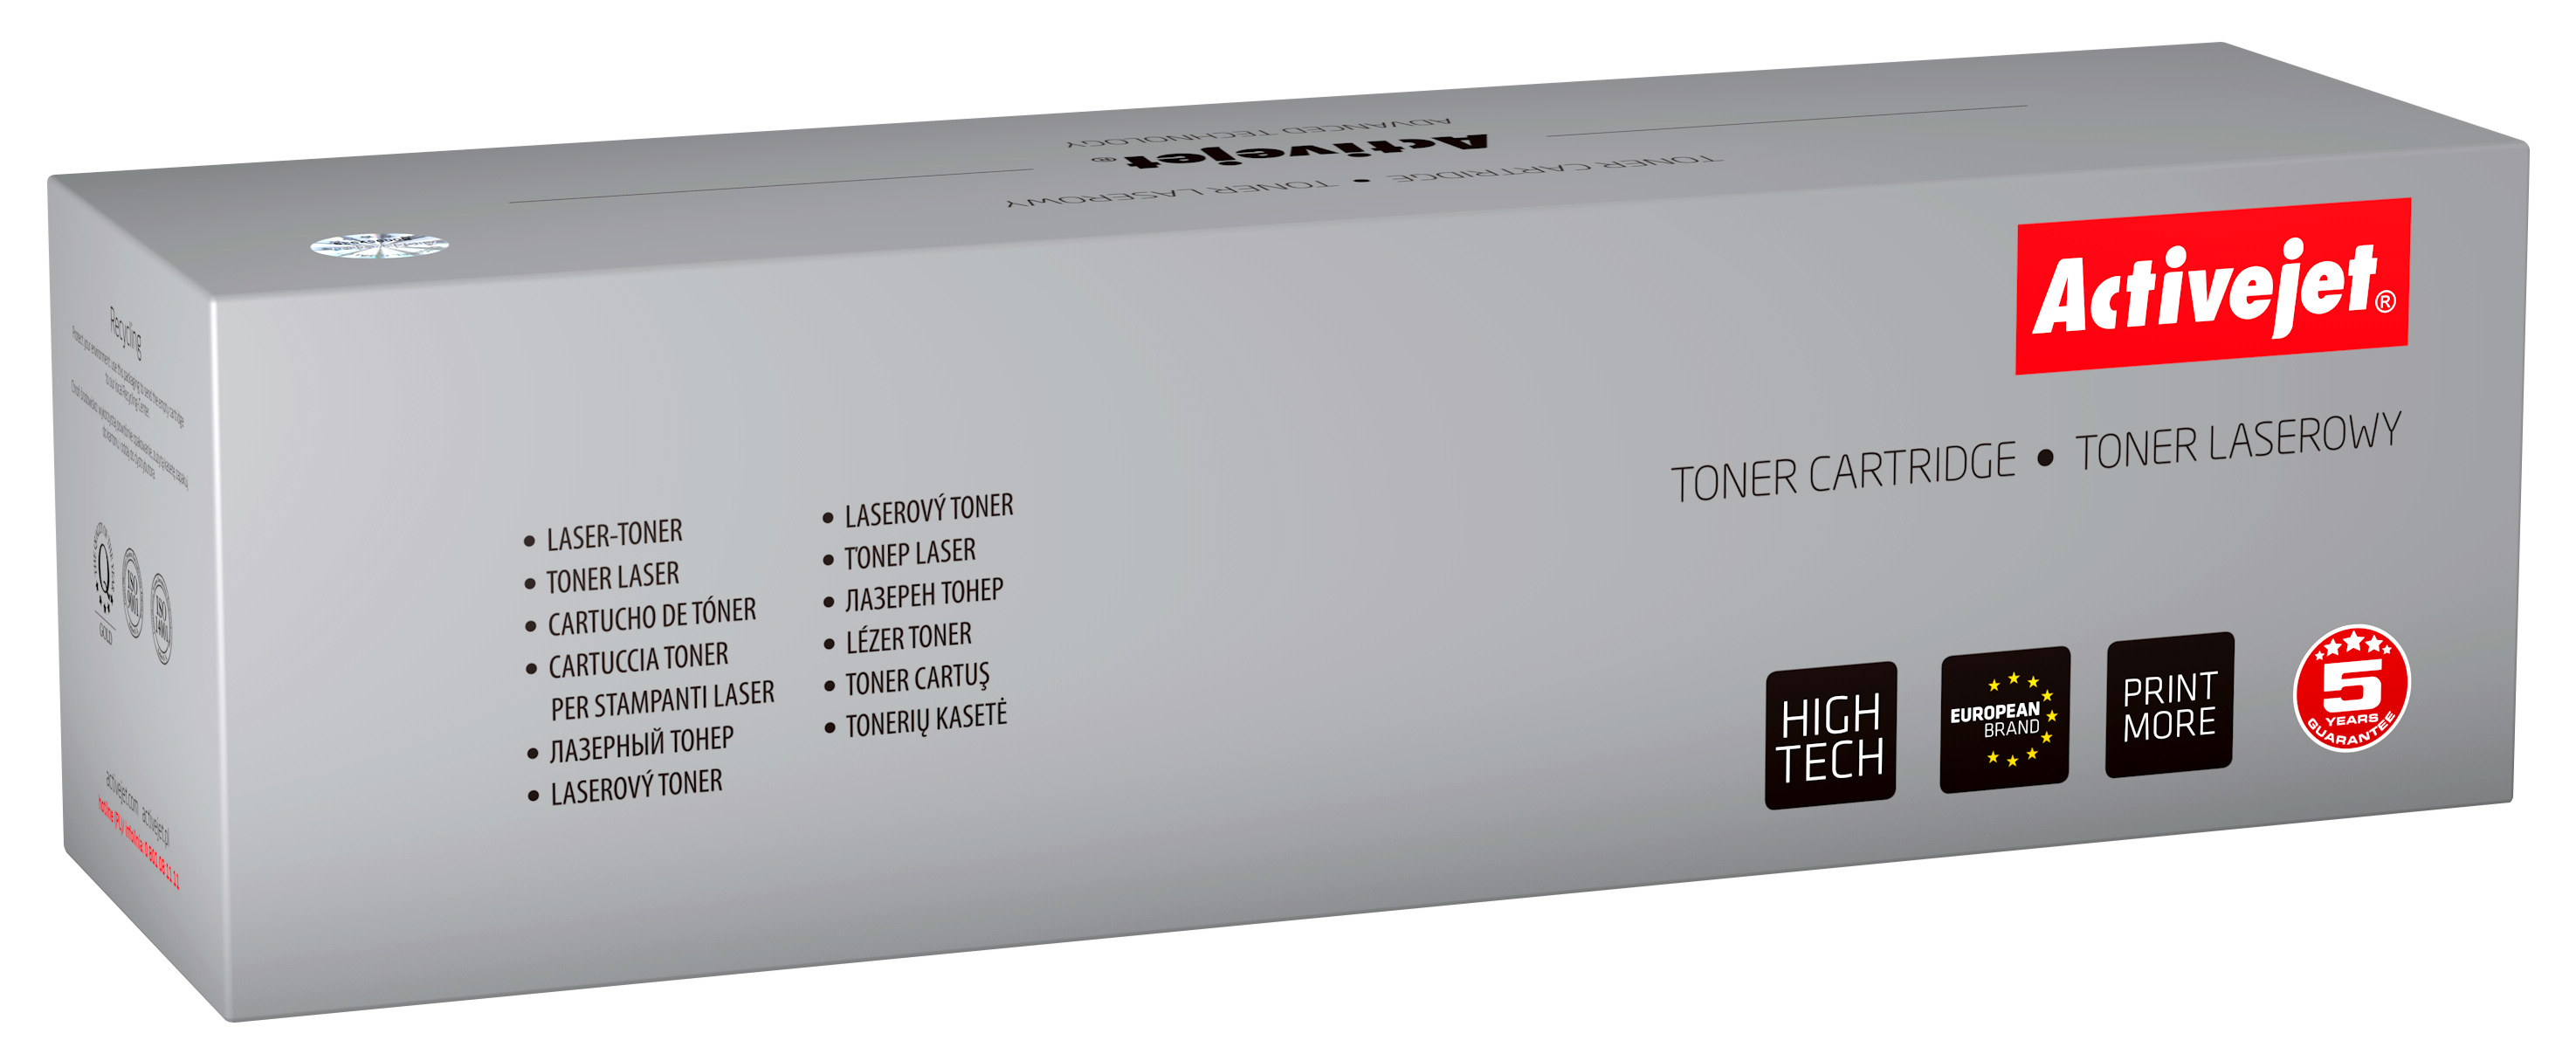 Activejet toner do Minolta TN324K new ATM-324BN